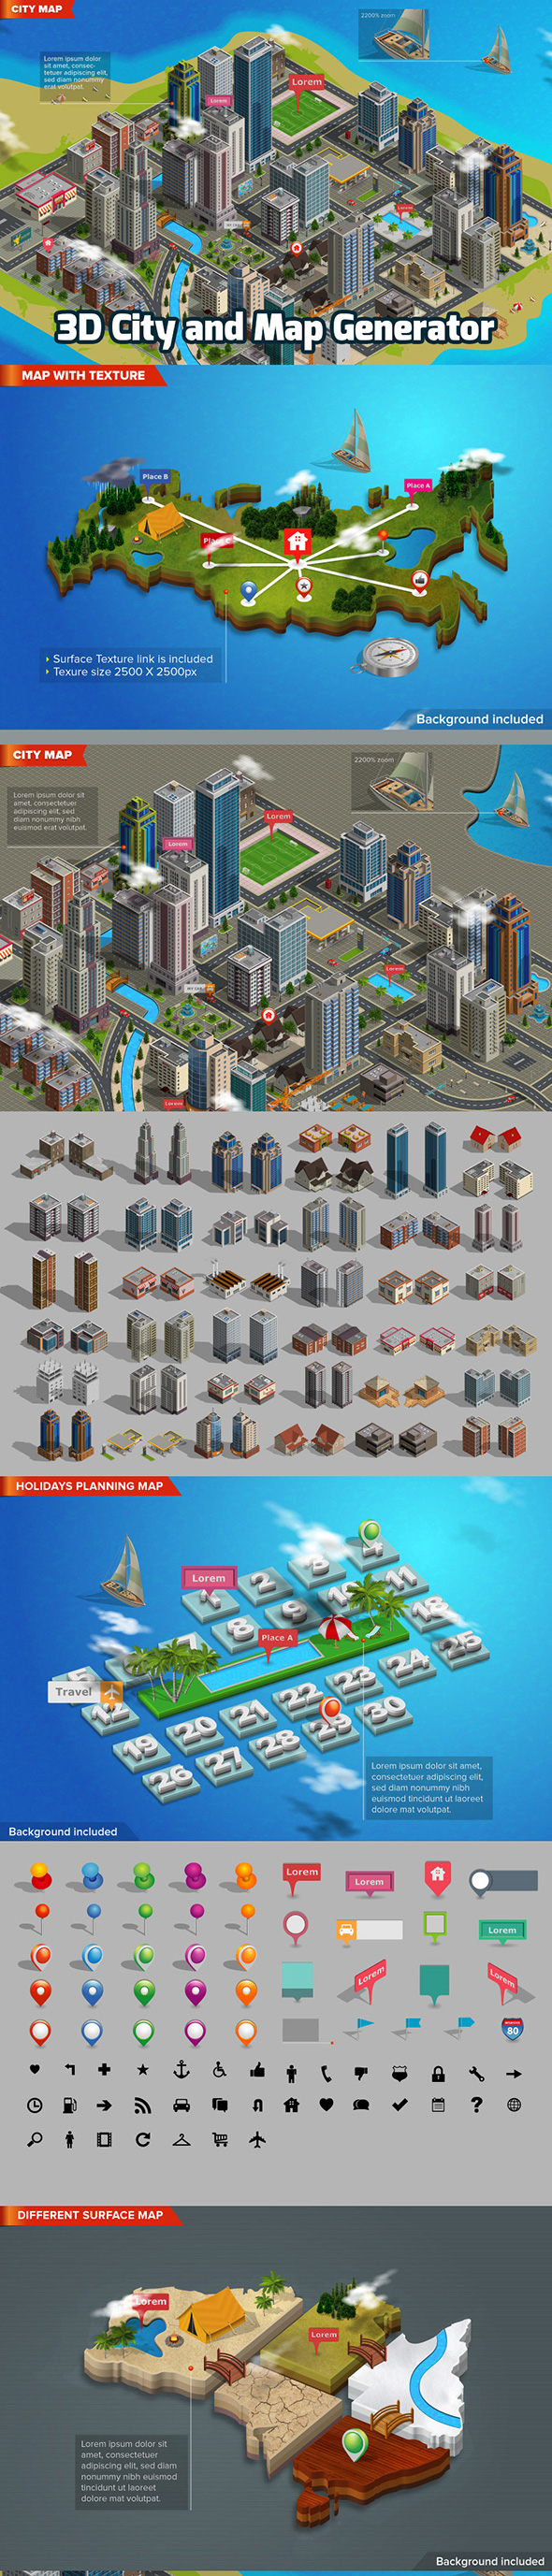 Los best sellers 2017 illustrator add ons de graphicriver 3d city and map generator by designhatti graphicriver gumiabroncs Gallery